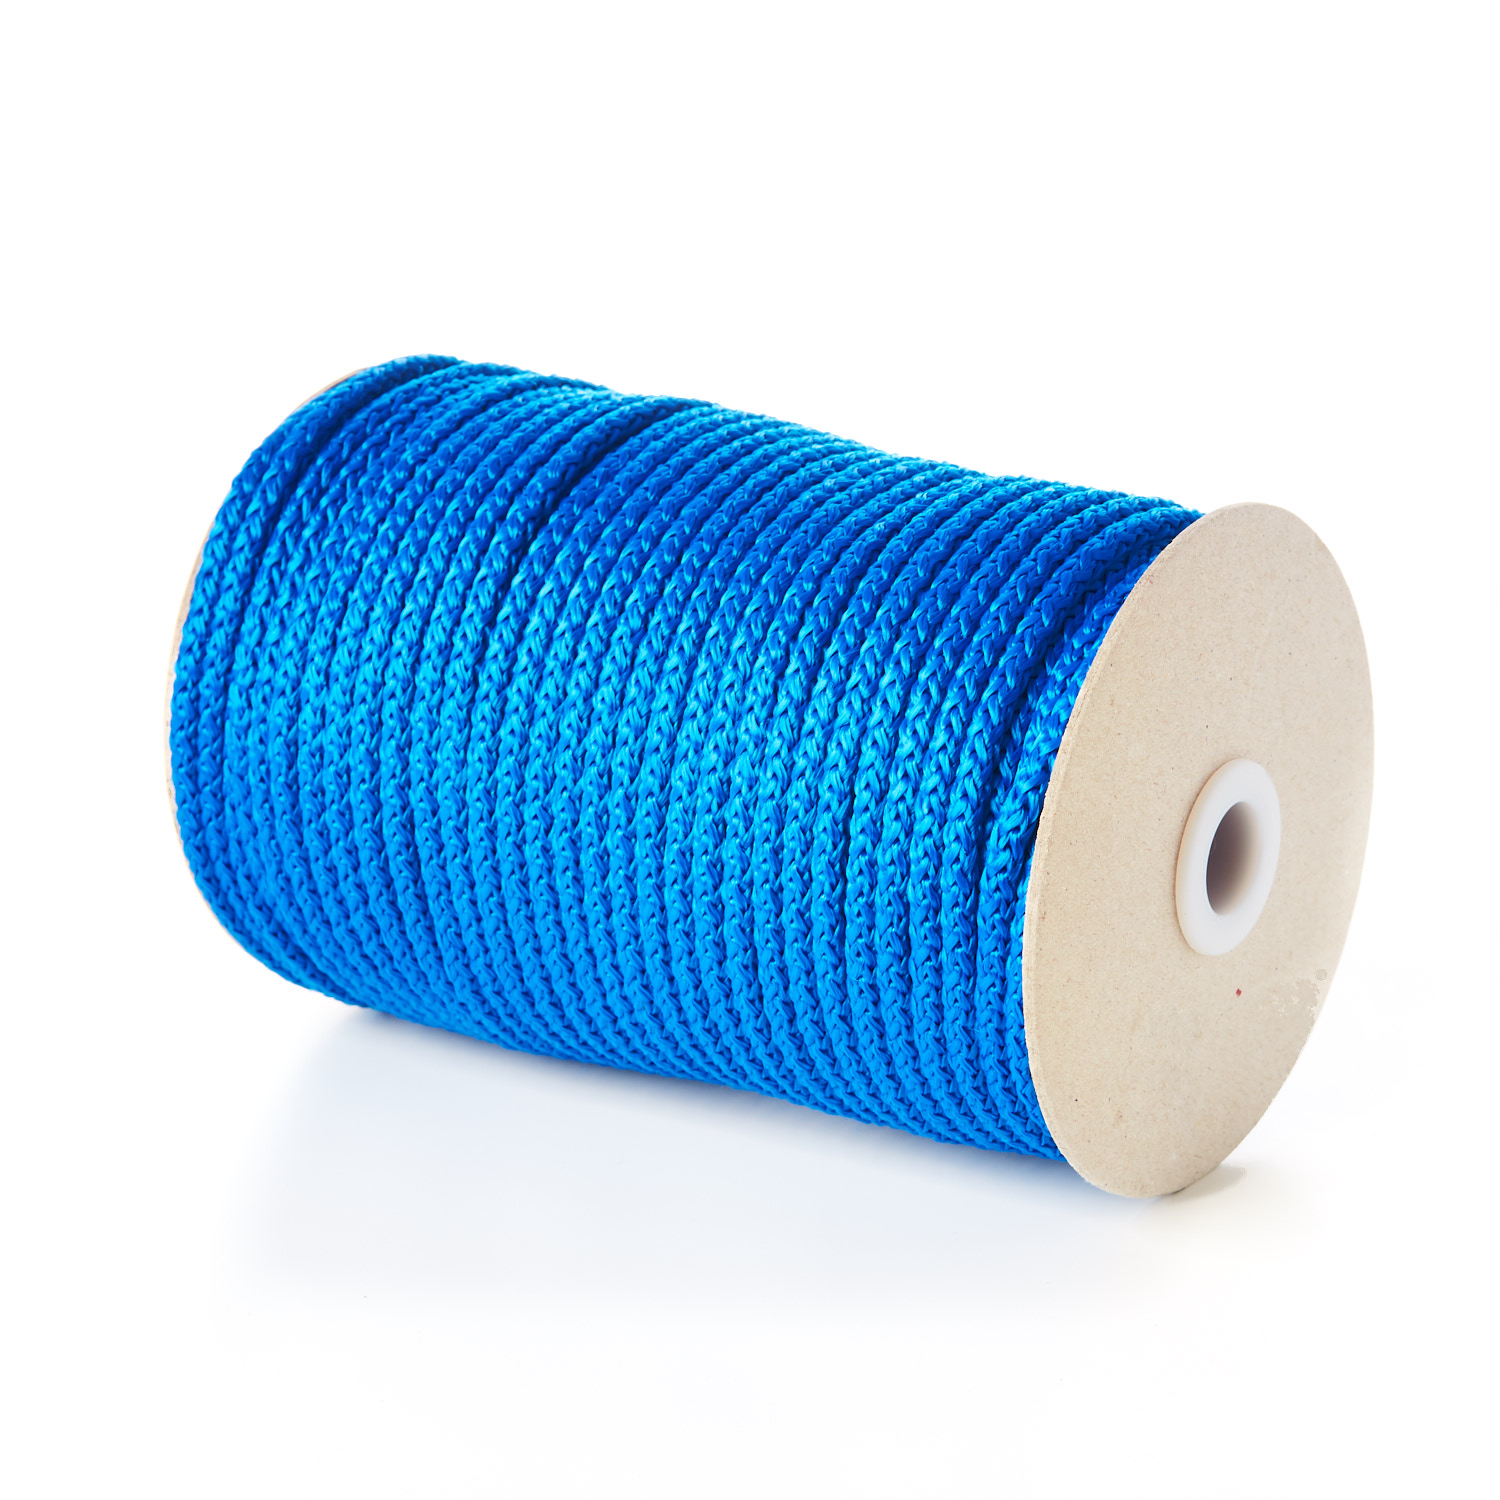 Polypropylene Knitted Cords Round String Rope Strong